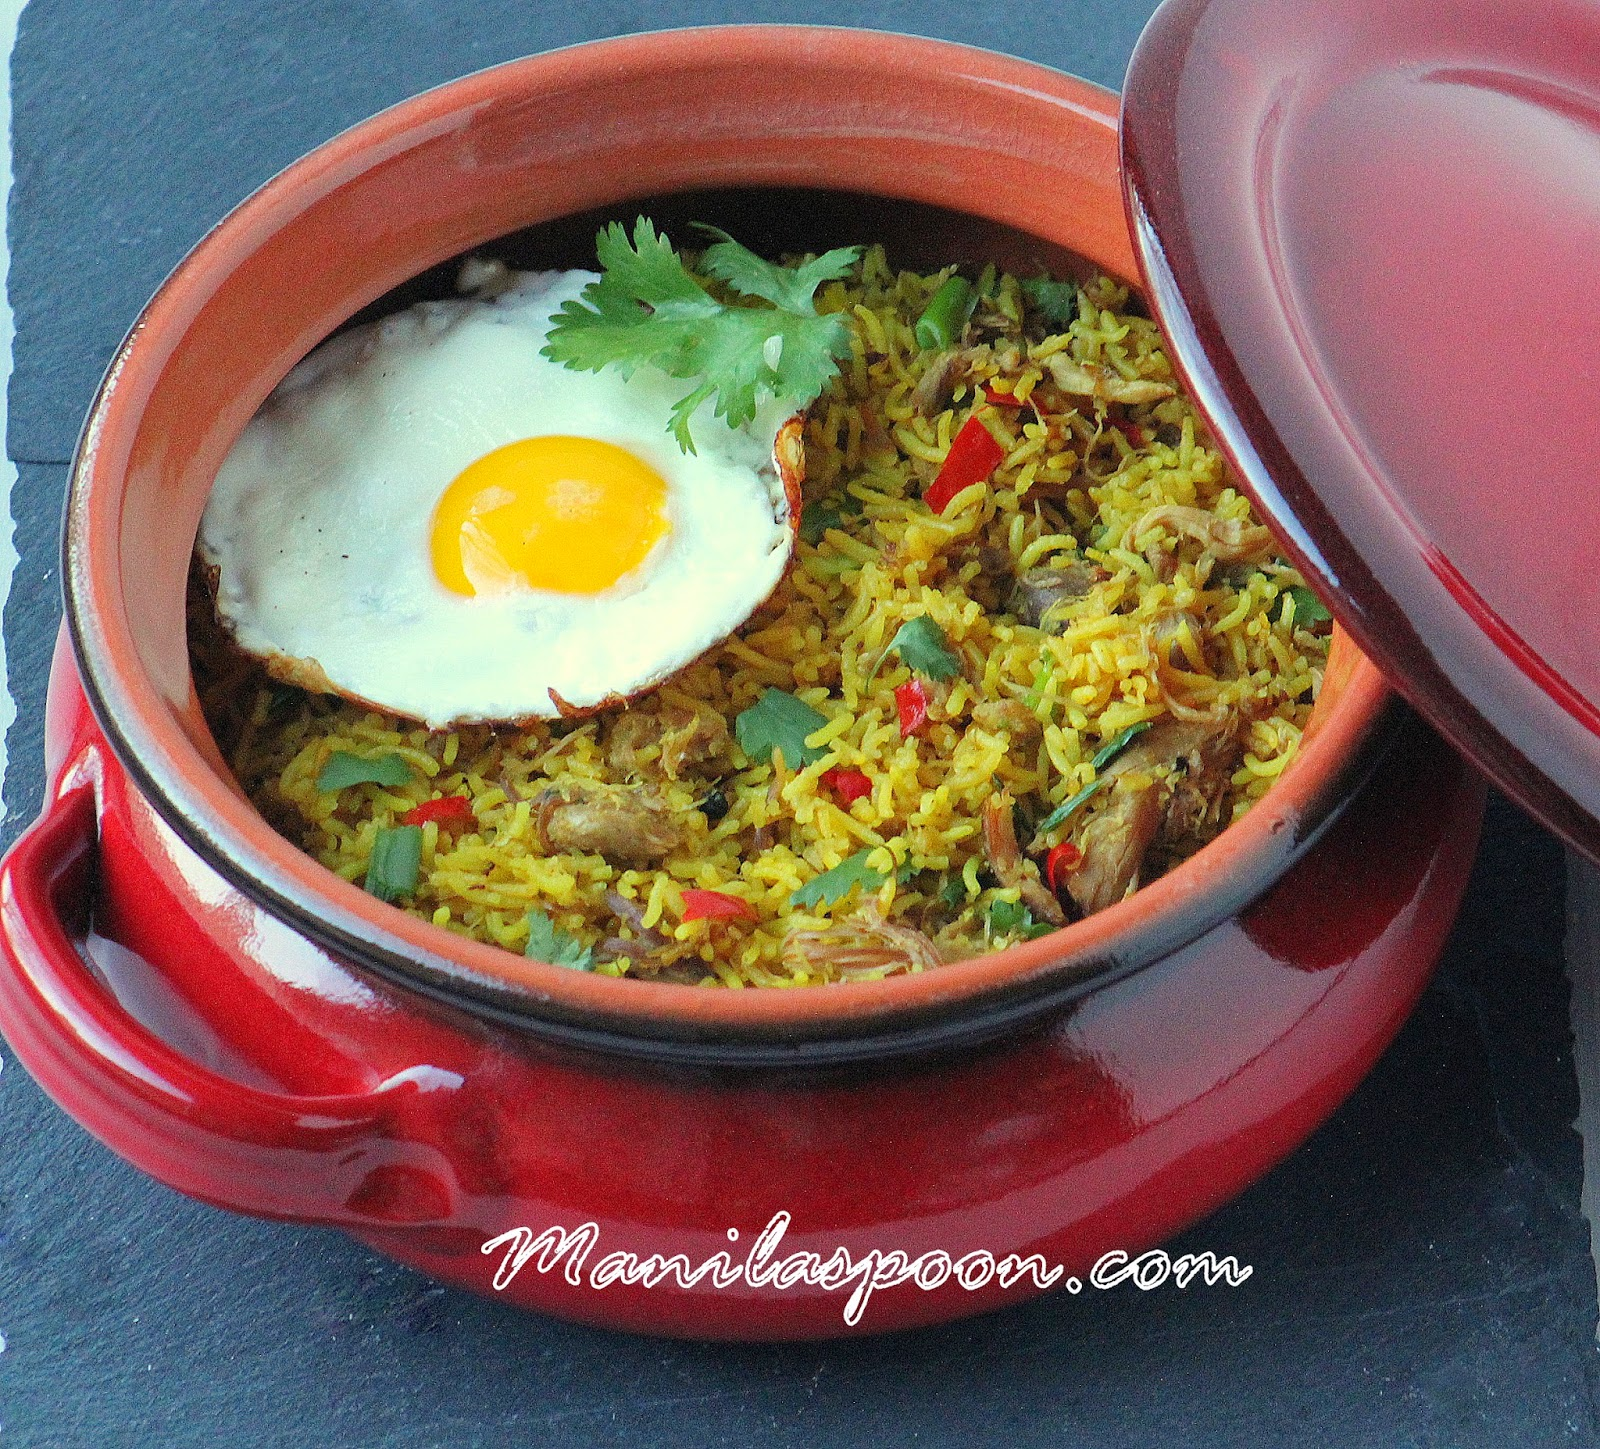 So aromatic and full of flavor is this Indonesian Fried Rice (Nasi Goreng)! Easy and delicious side dish for sure!